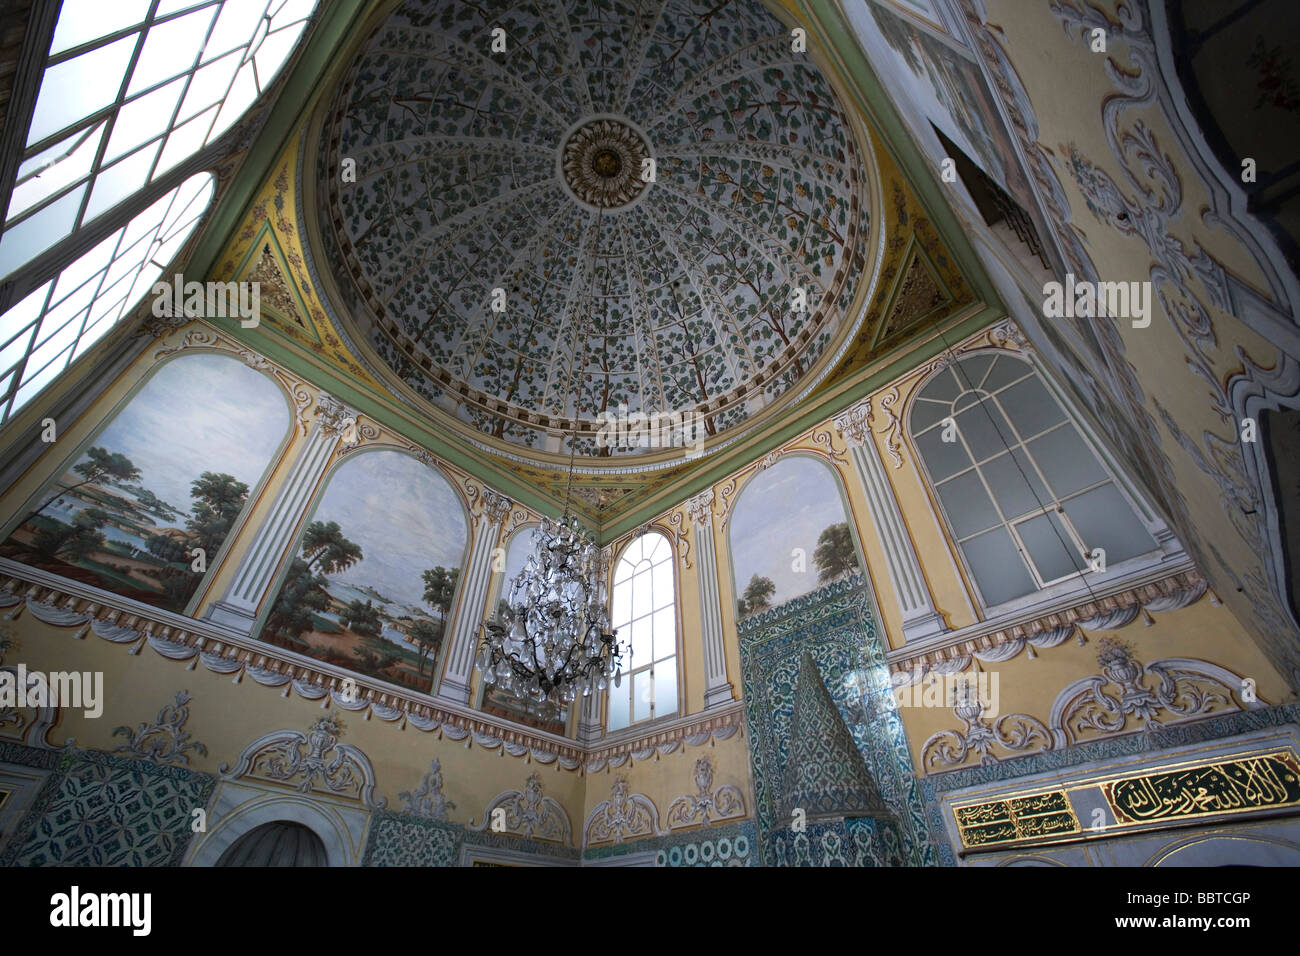 Reception Hall of Dowager Sultan, Topkapi Palace, Istanbul, turkey, Europe